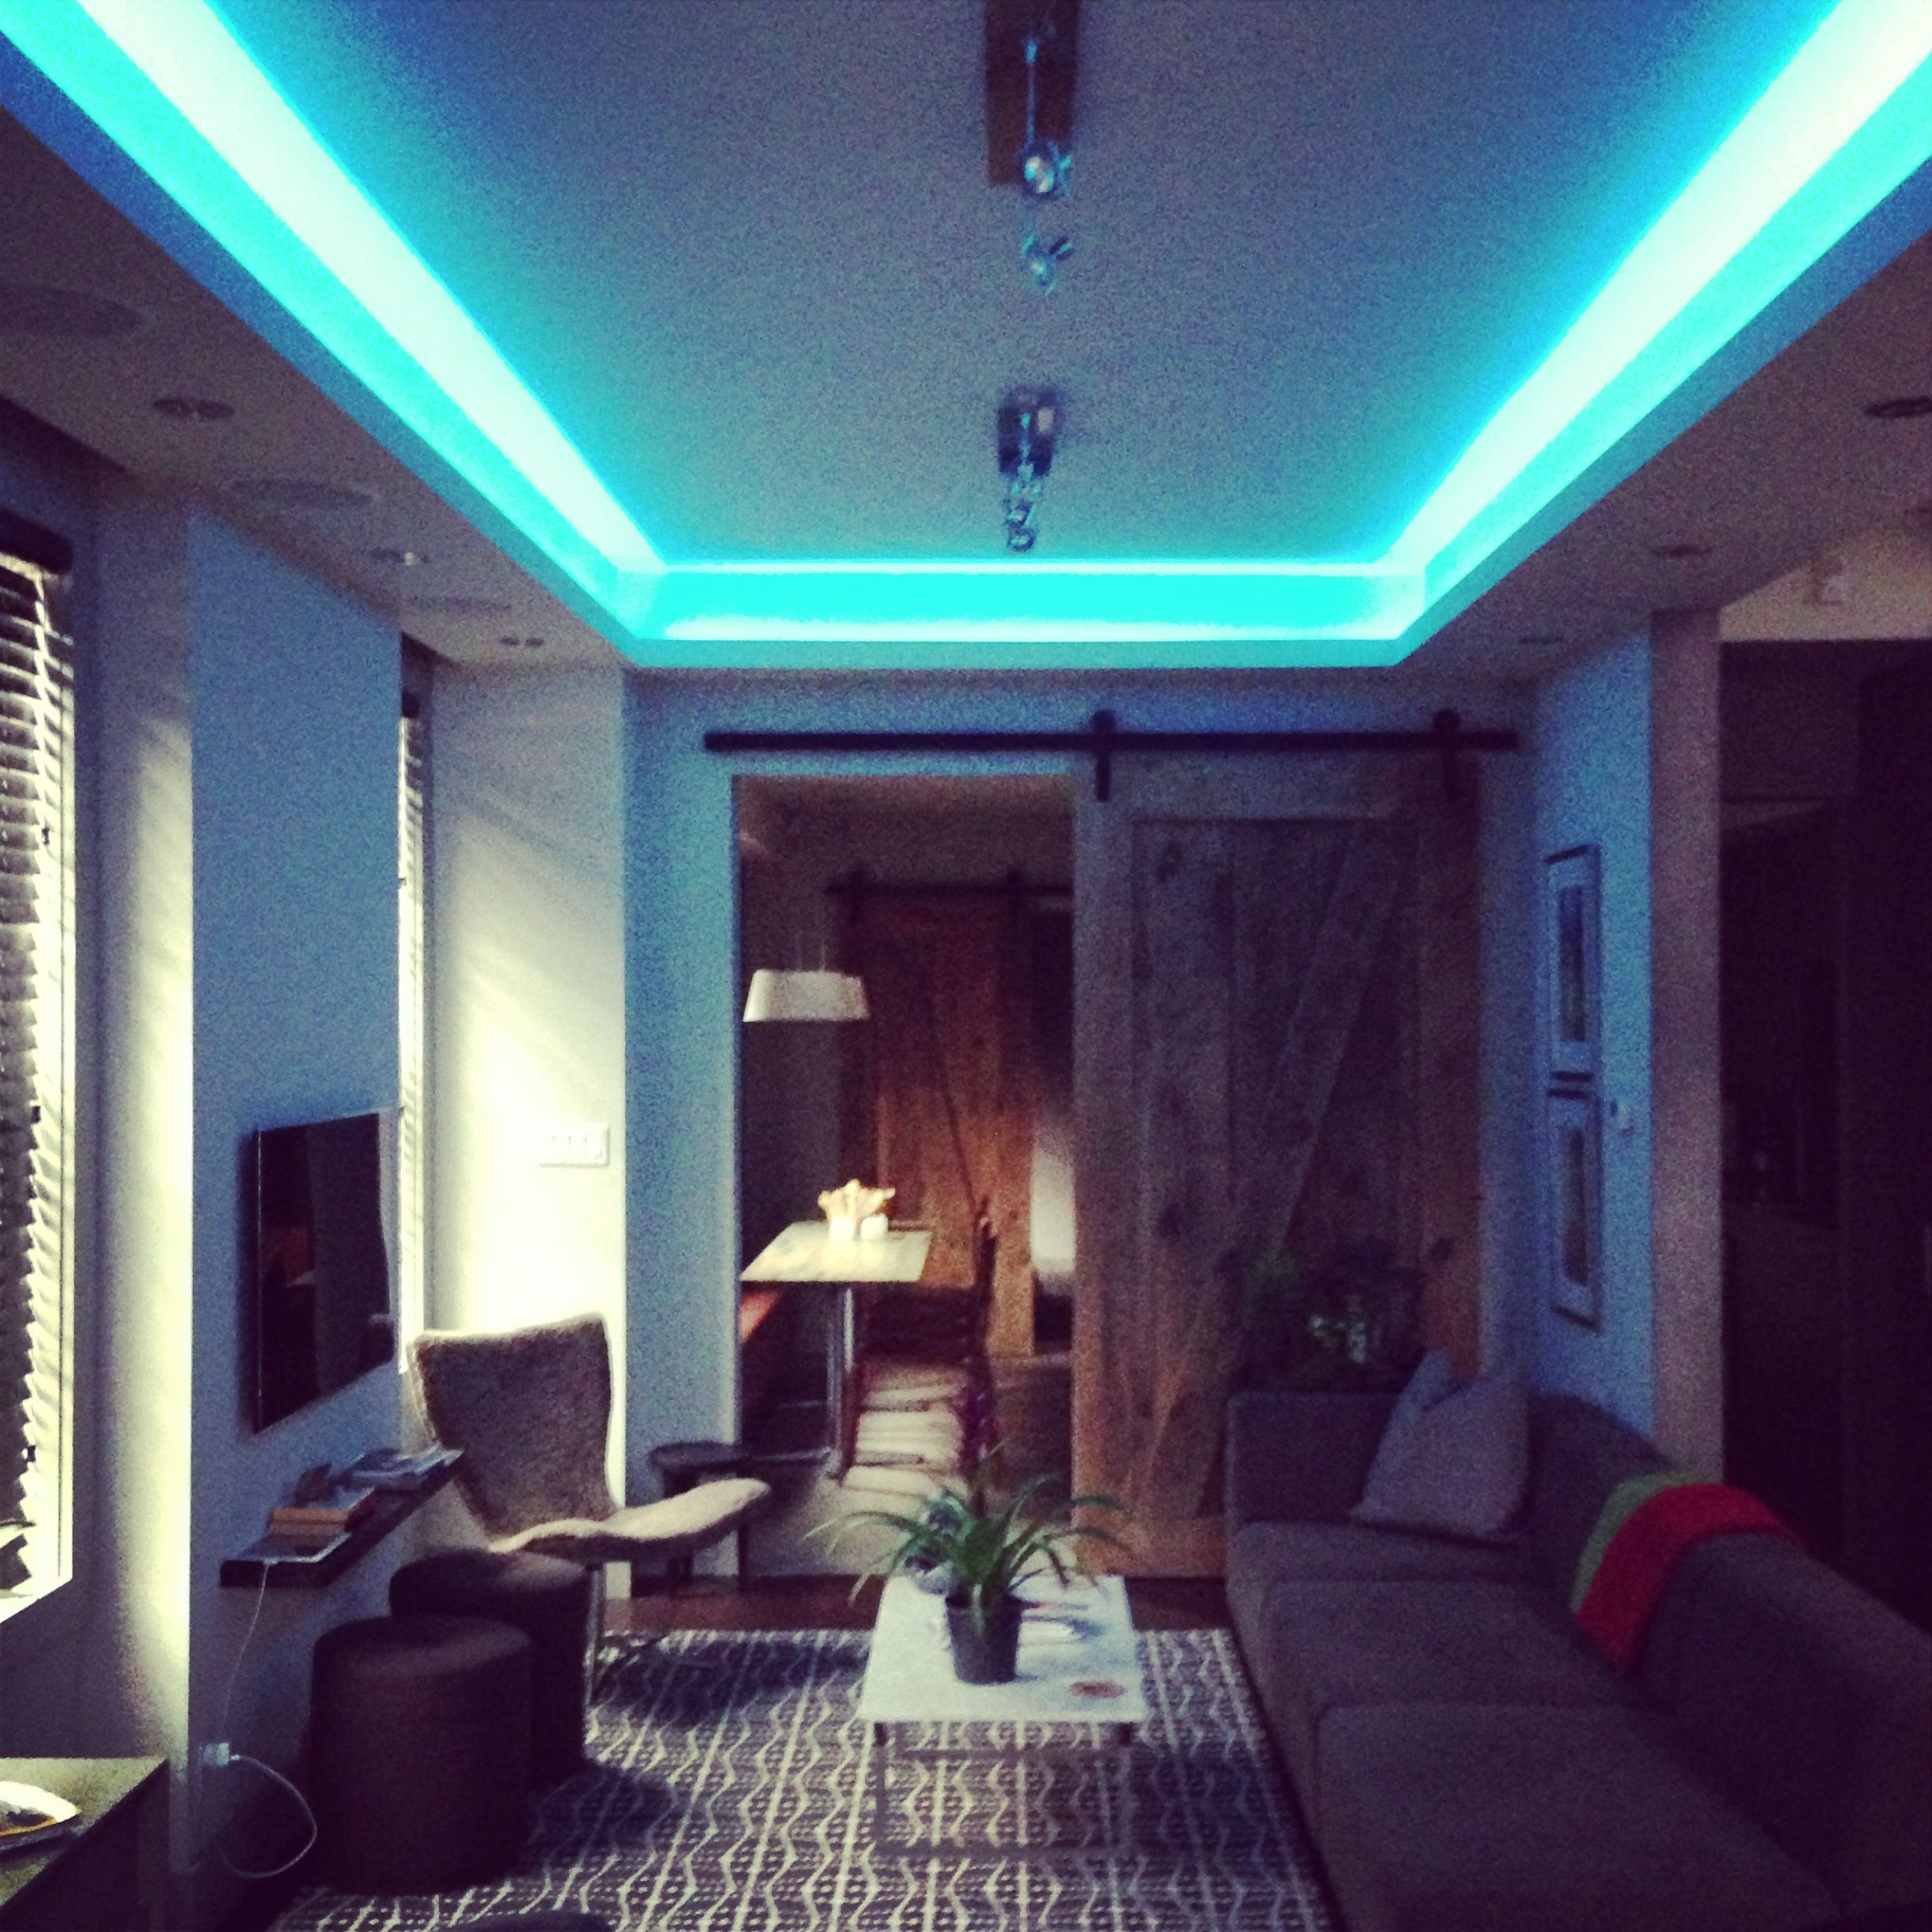 Indirect Lighting Techniques And Ideas For Bedroom Living: Programmable Color Change LED Cove Lighting For Events And